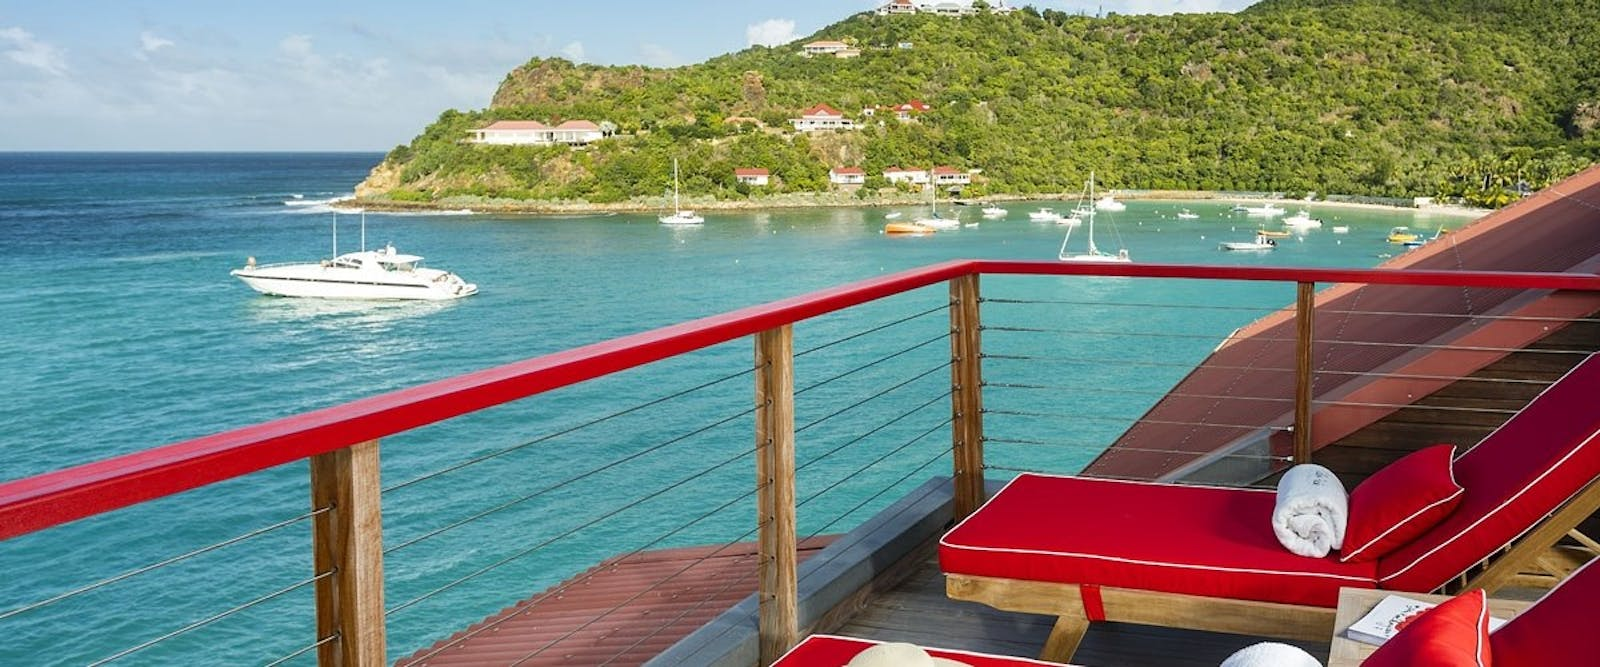 Fregate Premium Suite at Eden Rock, St Barths